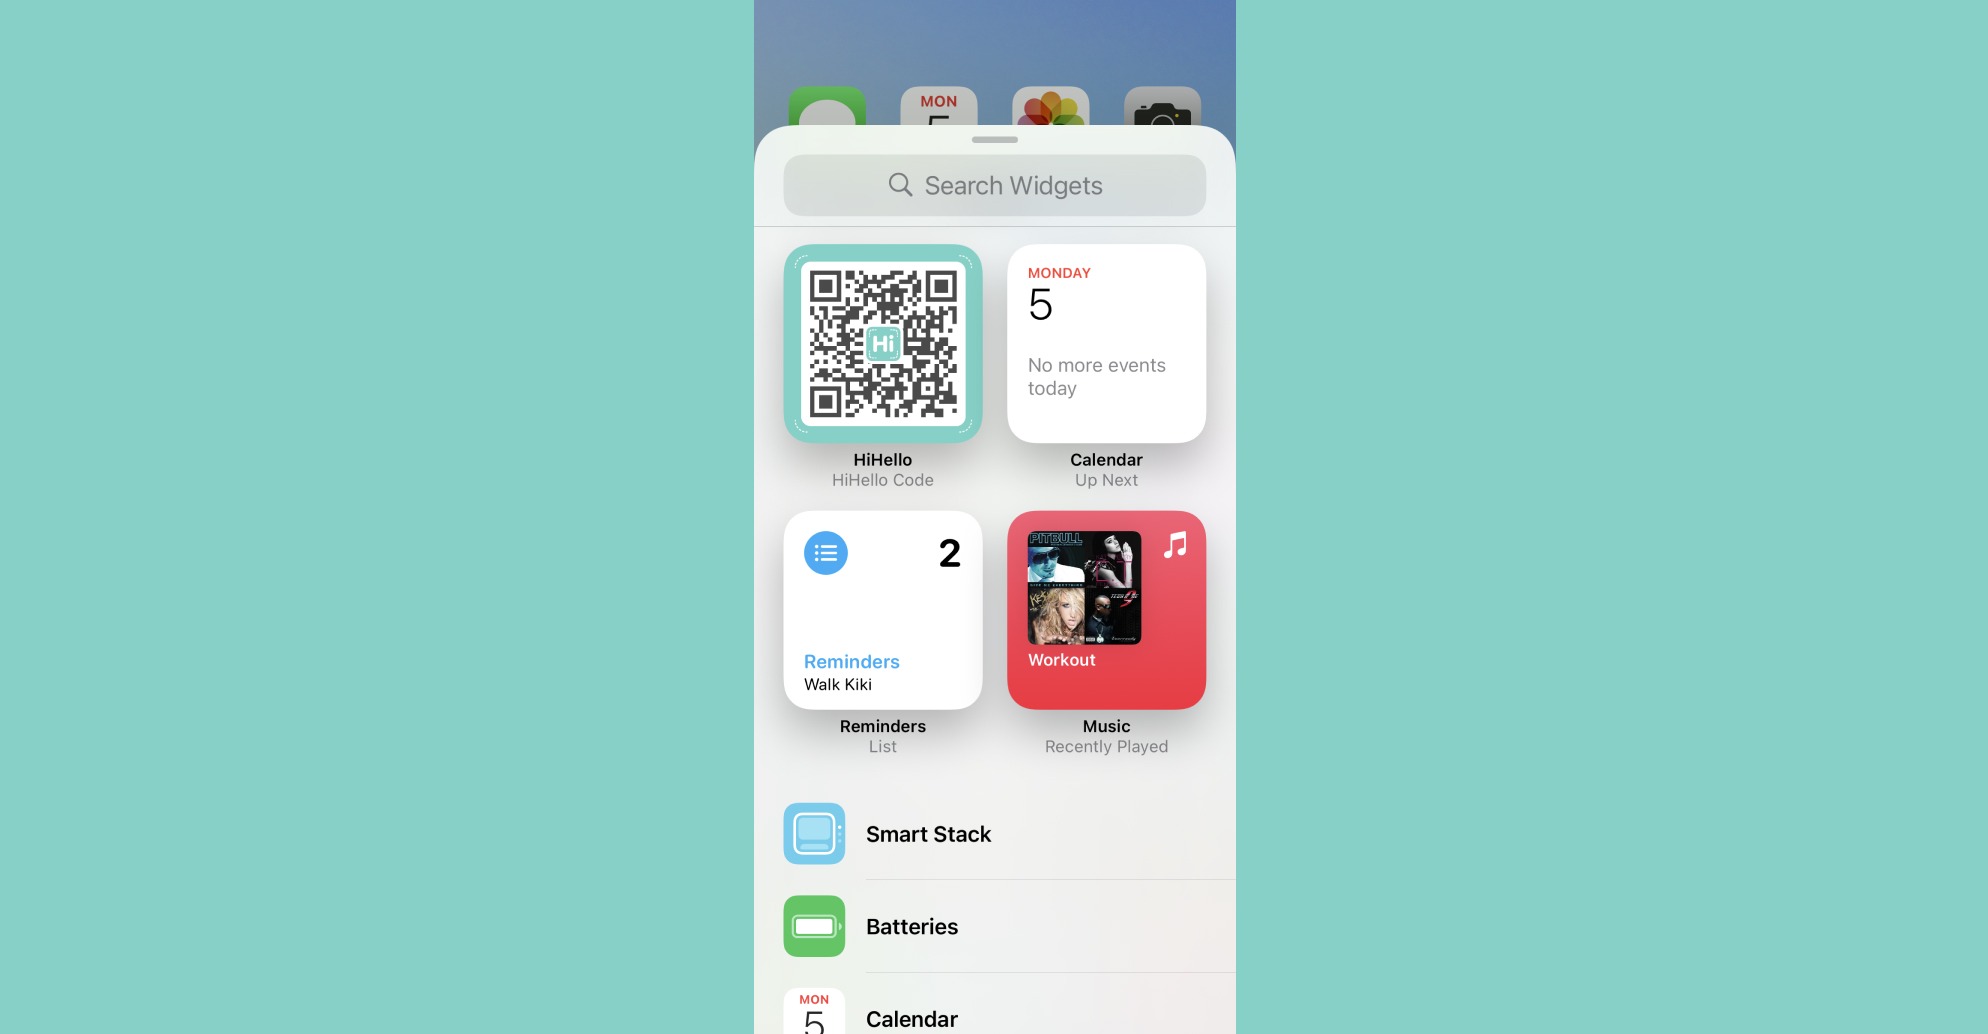 Scroll down until you see the HiHello digital business card QR code widget.